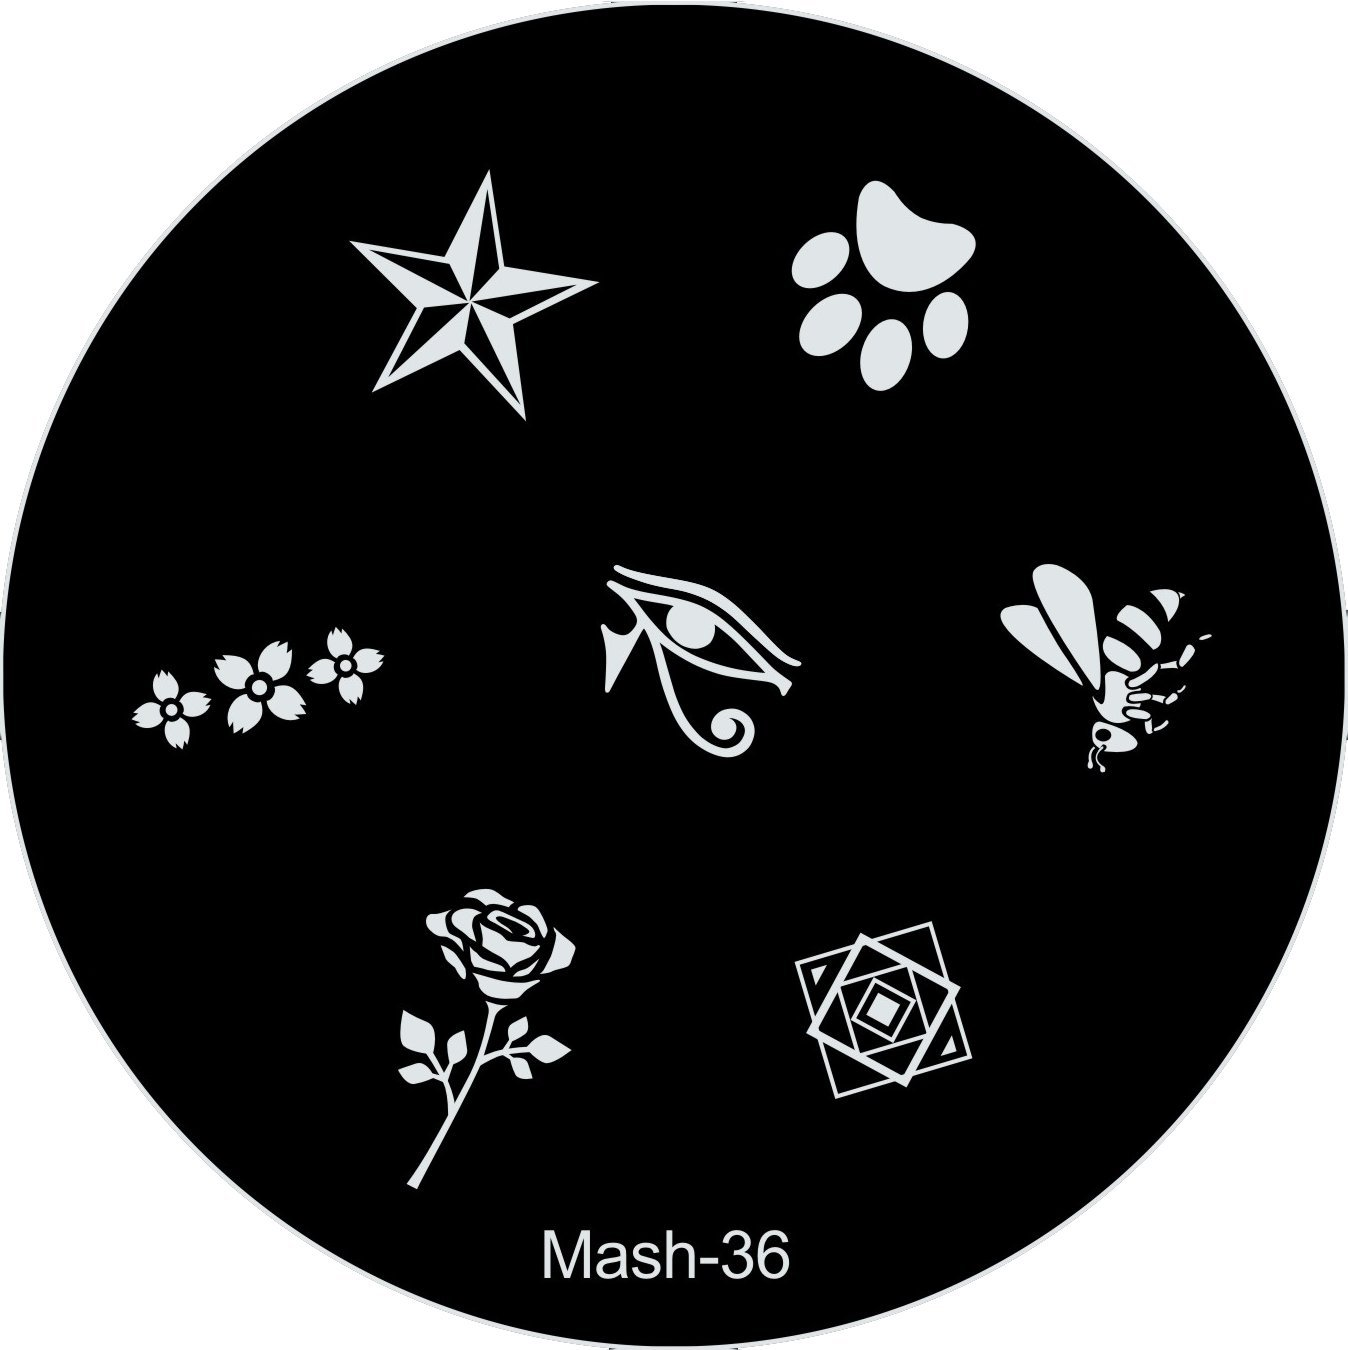 Amazon.com : MASH Nail Art Stamp Stamping Image Plate No 37 : Nail ...